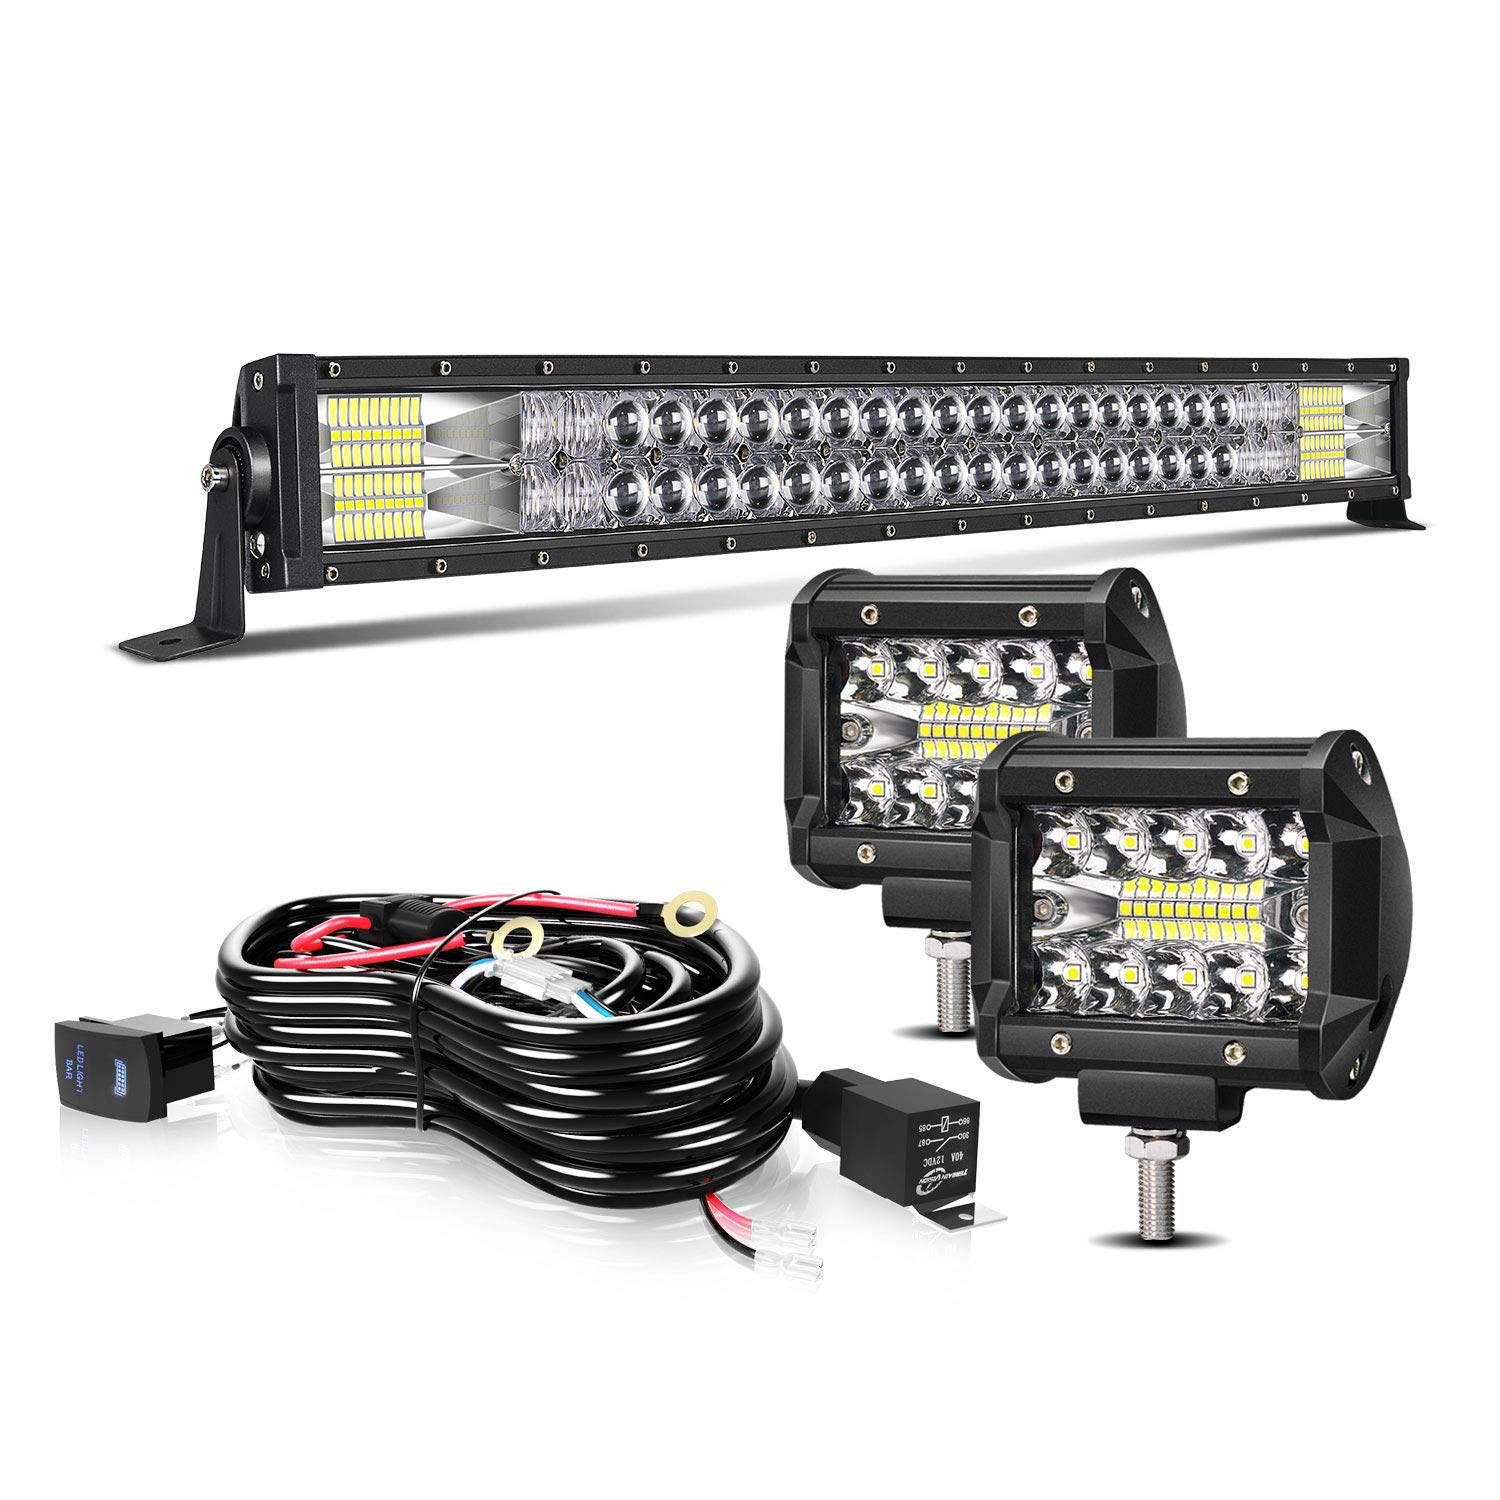 """TURBO SII 32"""" LED Light Bar 5D 180W Flood Spot Combo Beam Led Bar W/ 2Pcs 4in Off Road Driving Fog Lights with Wiring Harness-3 Leads for Jeep Trucks Polaris ATV Boats Lighting"""